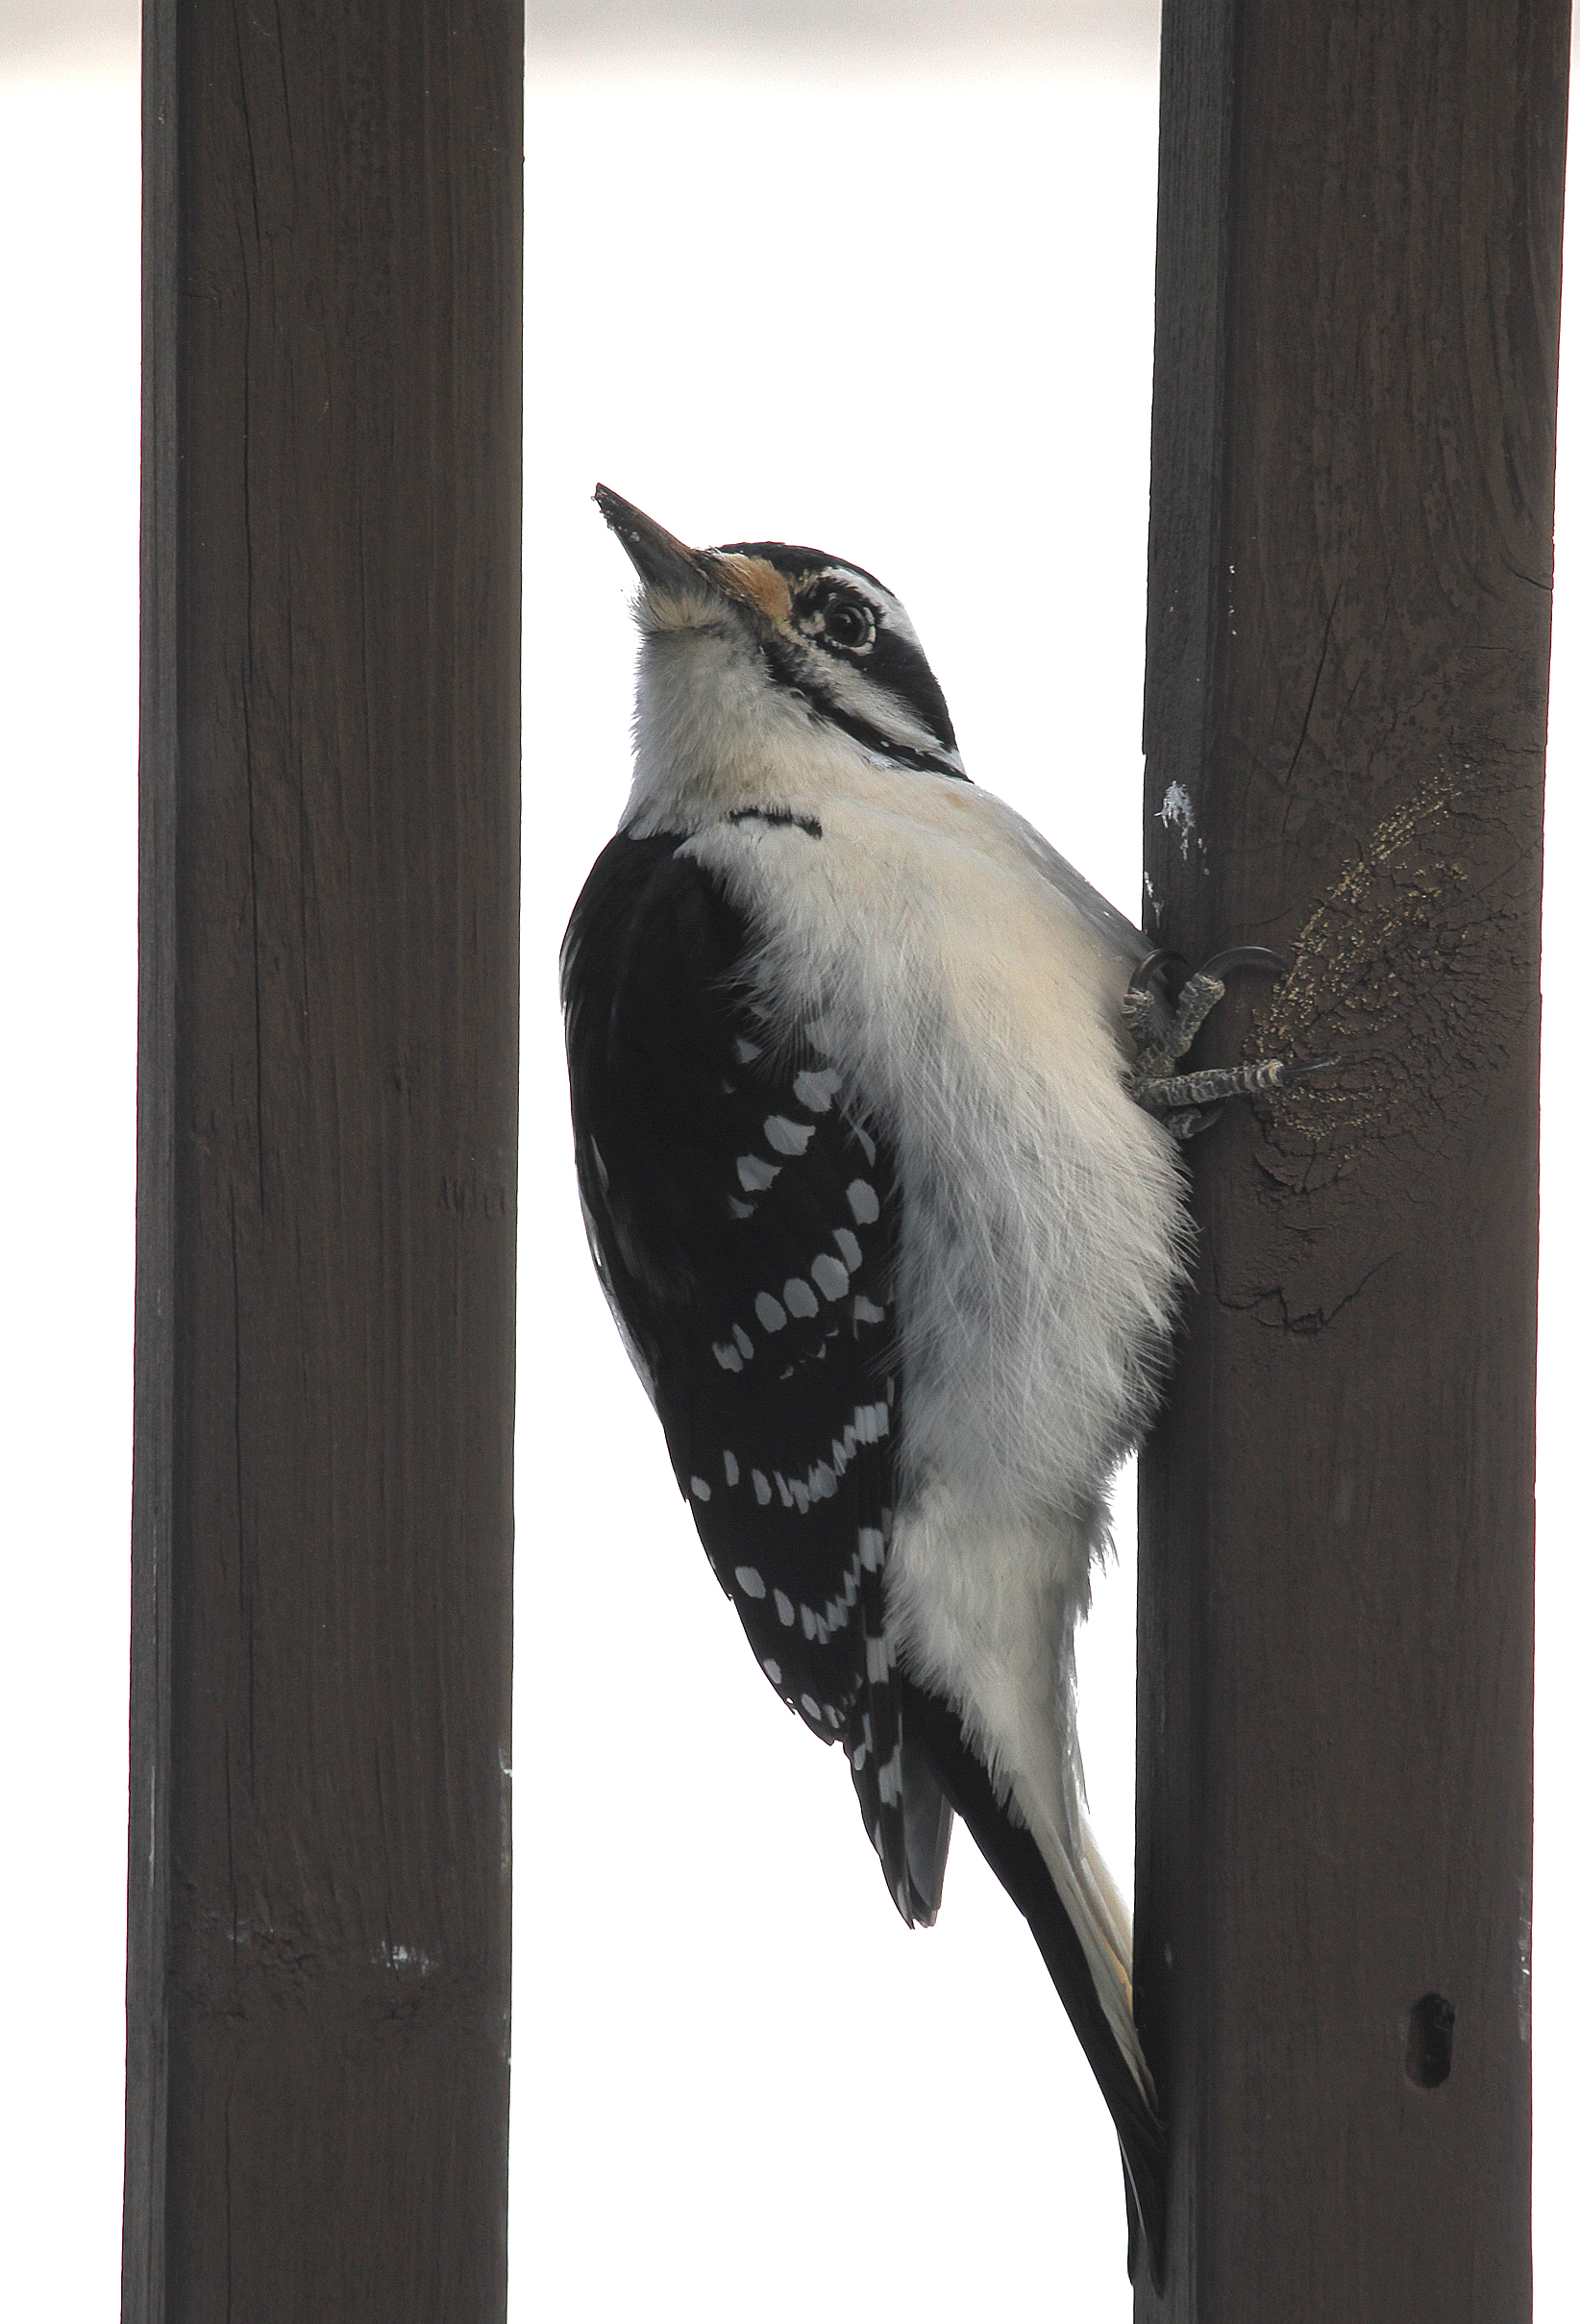 Hairy Woodpecker6